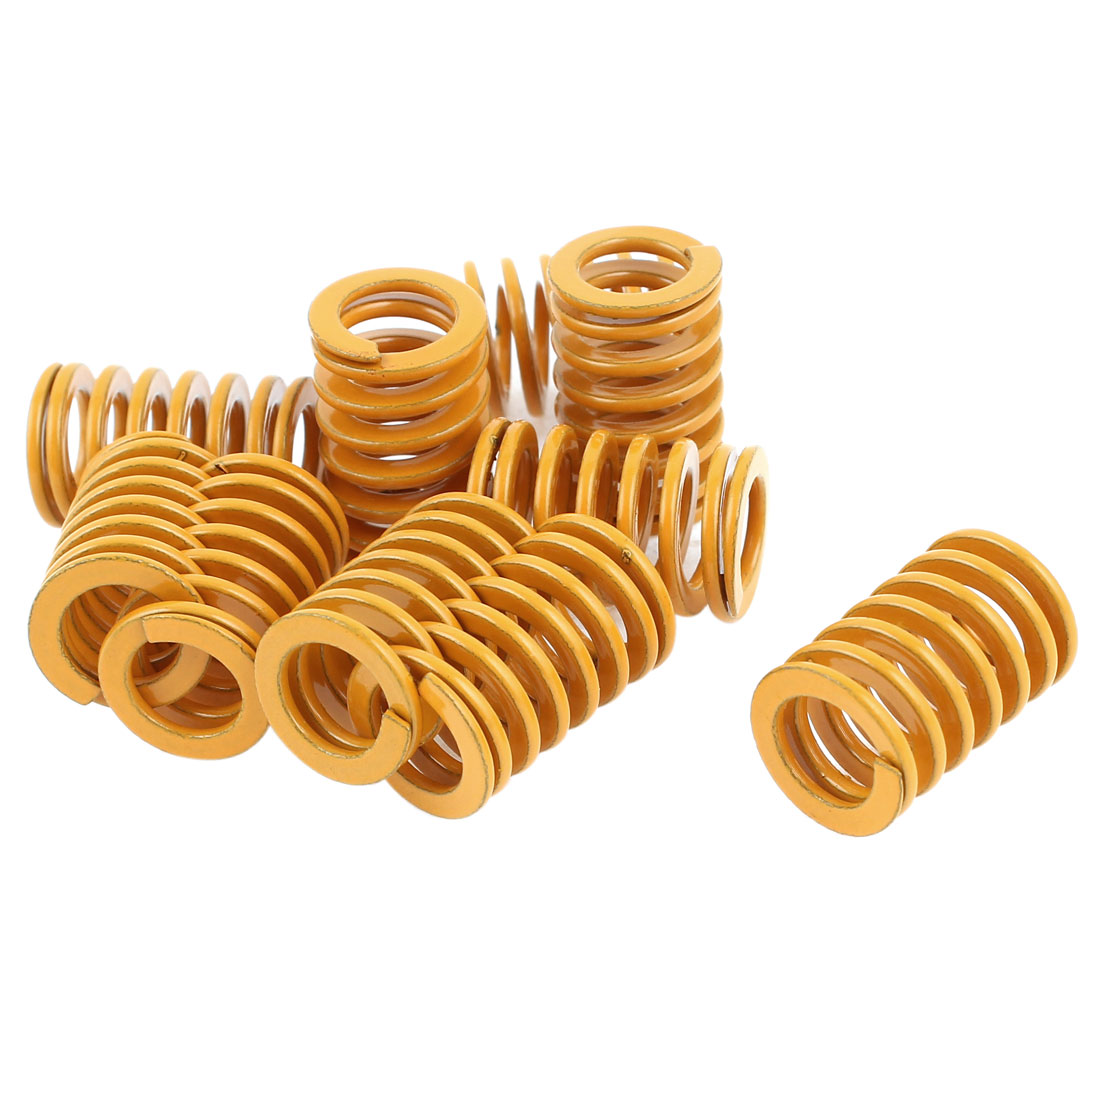 14mm x 9mm x 21mm Tubular Section Mold Mould Die Spring Yellow 10 Pcs